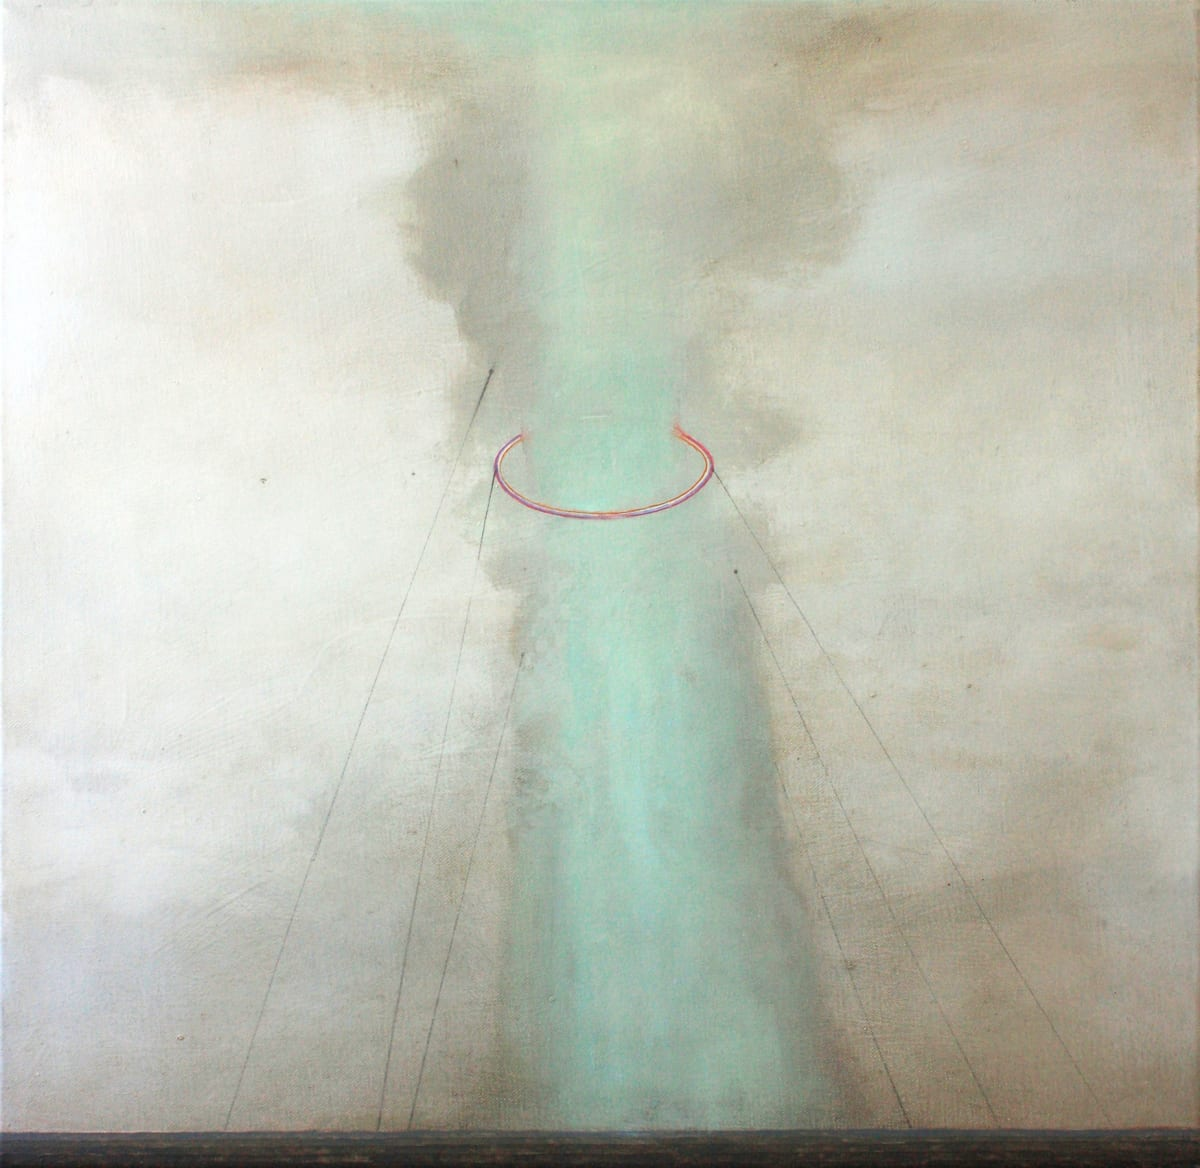 Gillian Lawler Vent Oil on canvas 60 x 60cm